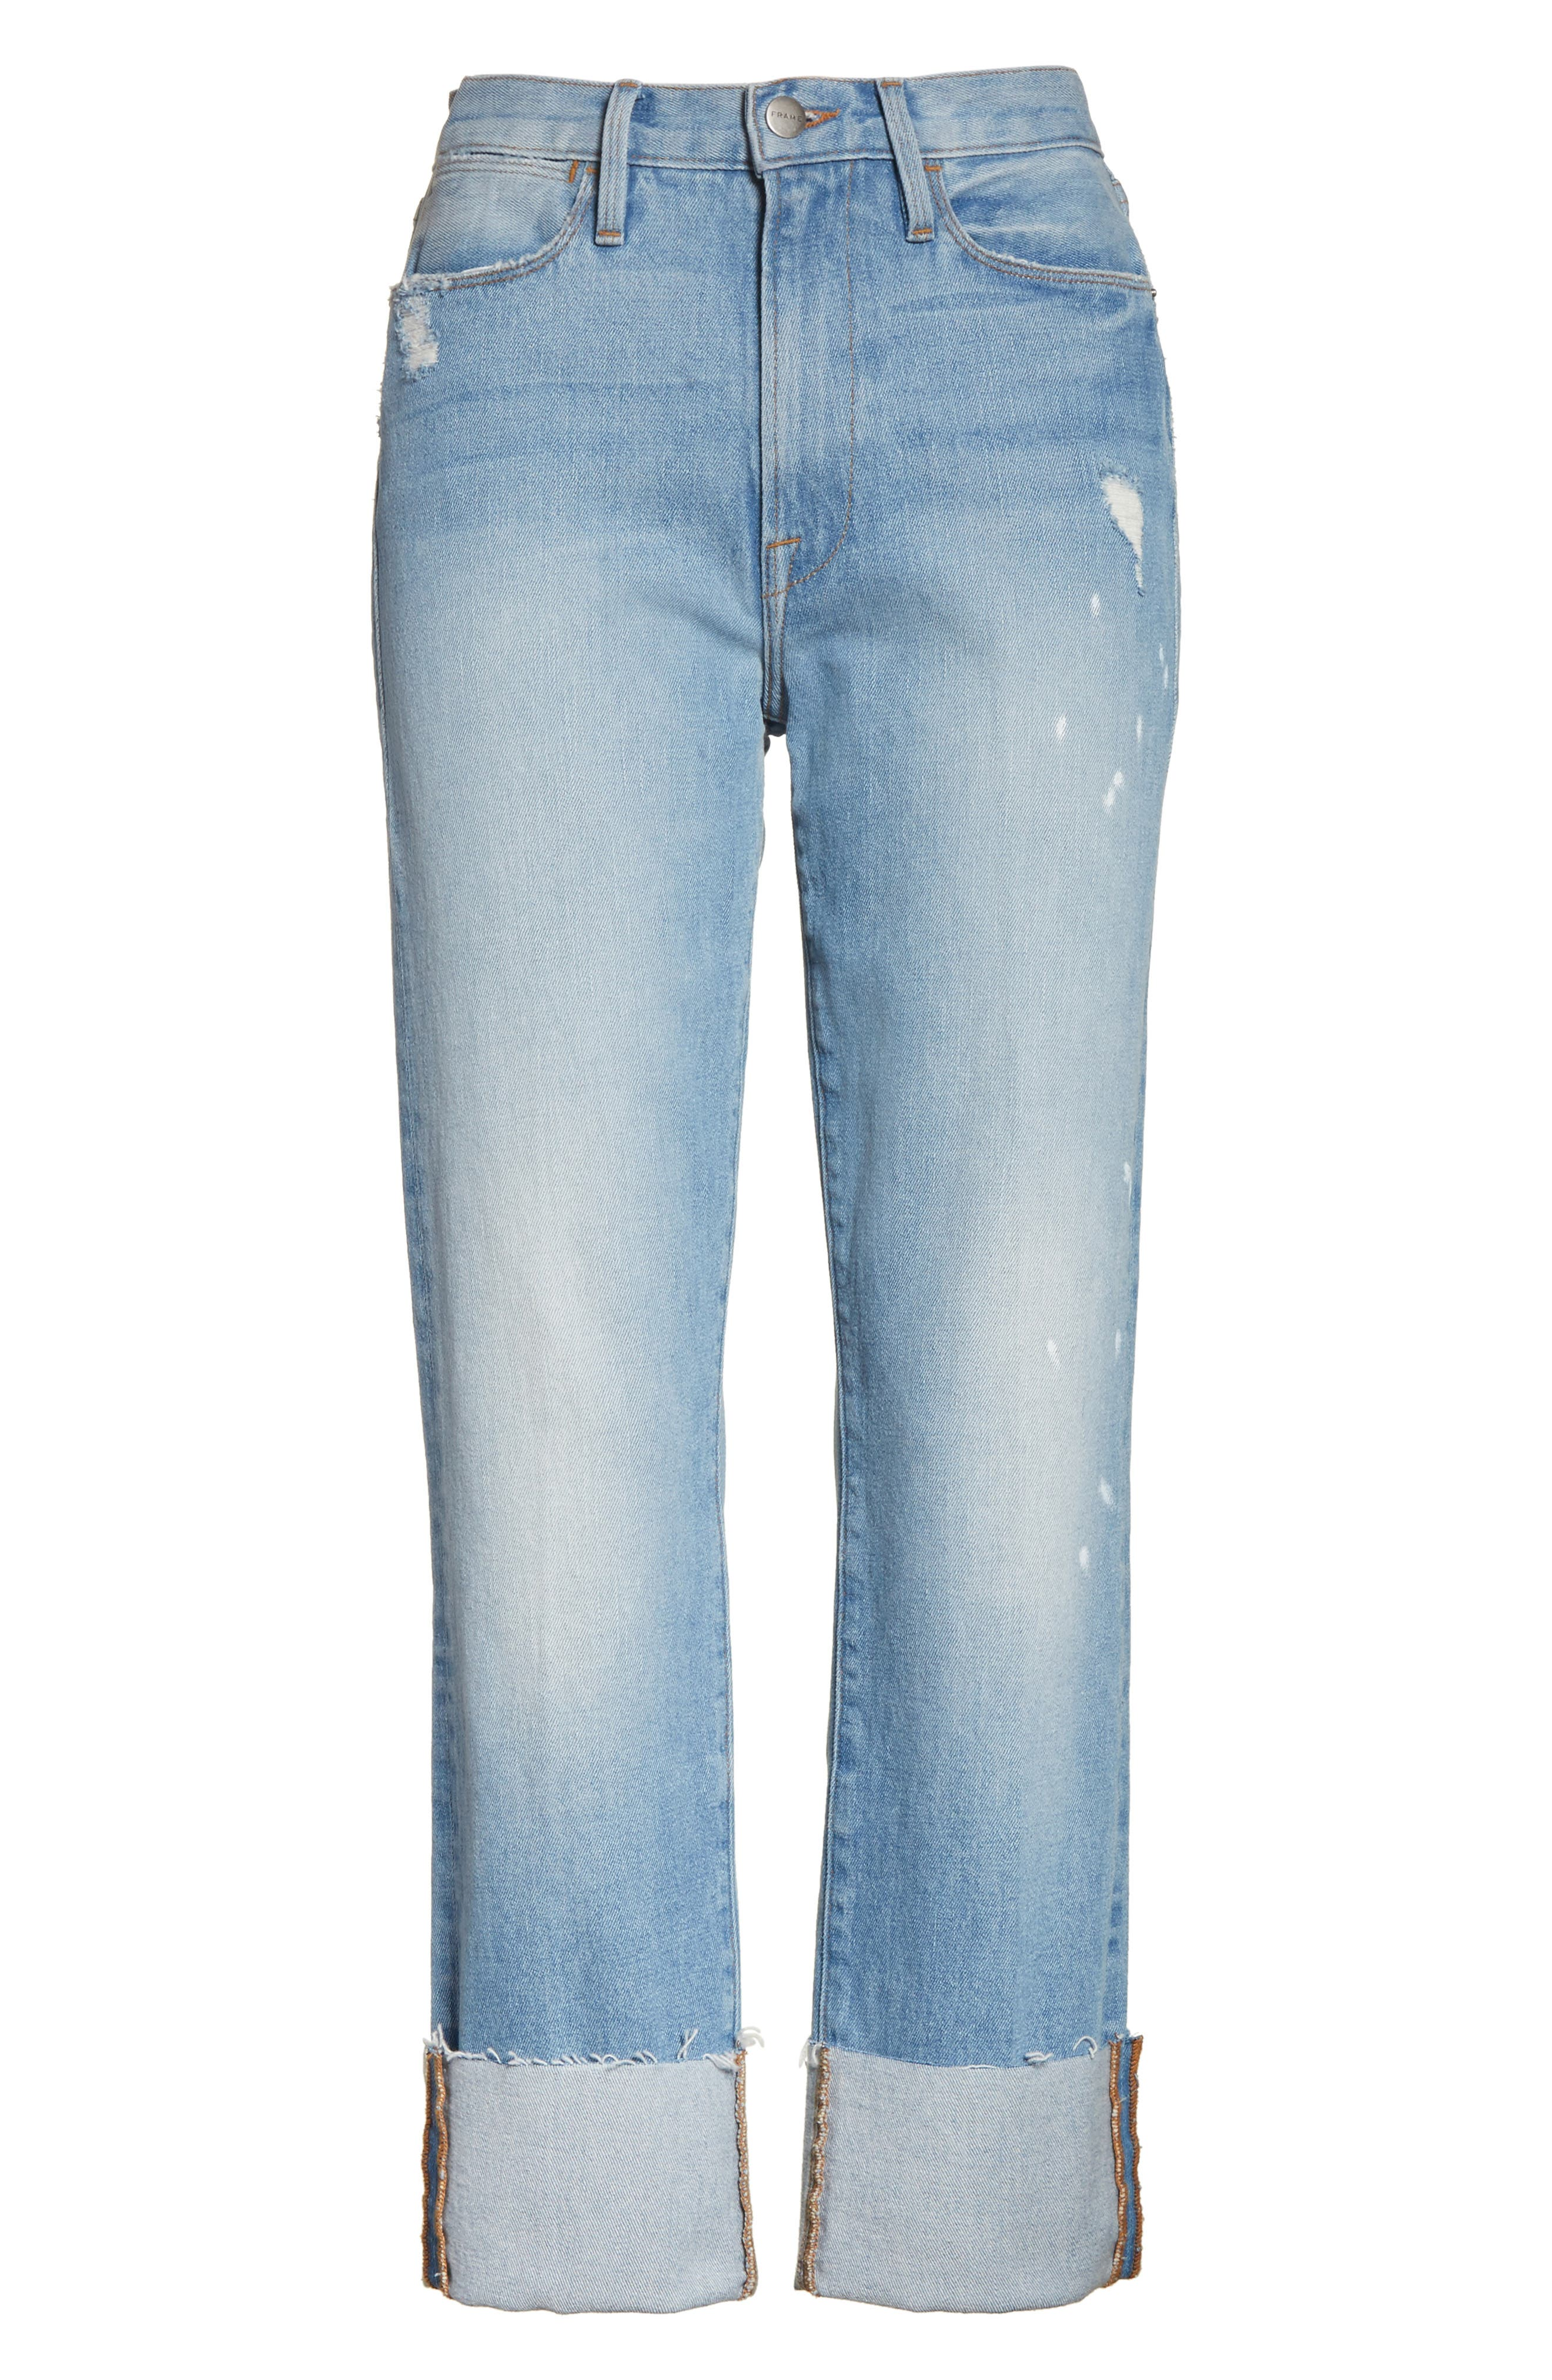 Le High Straight Leg Cuffed Jeans,                             Alternate thumbnail 7, color,                             Berkshire